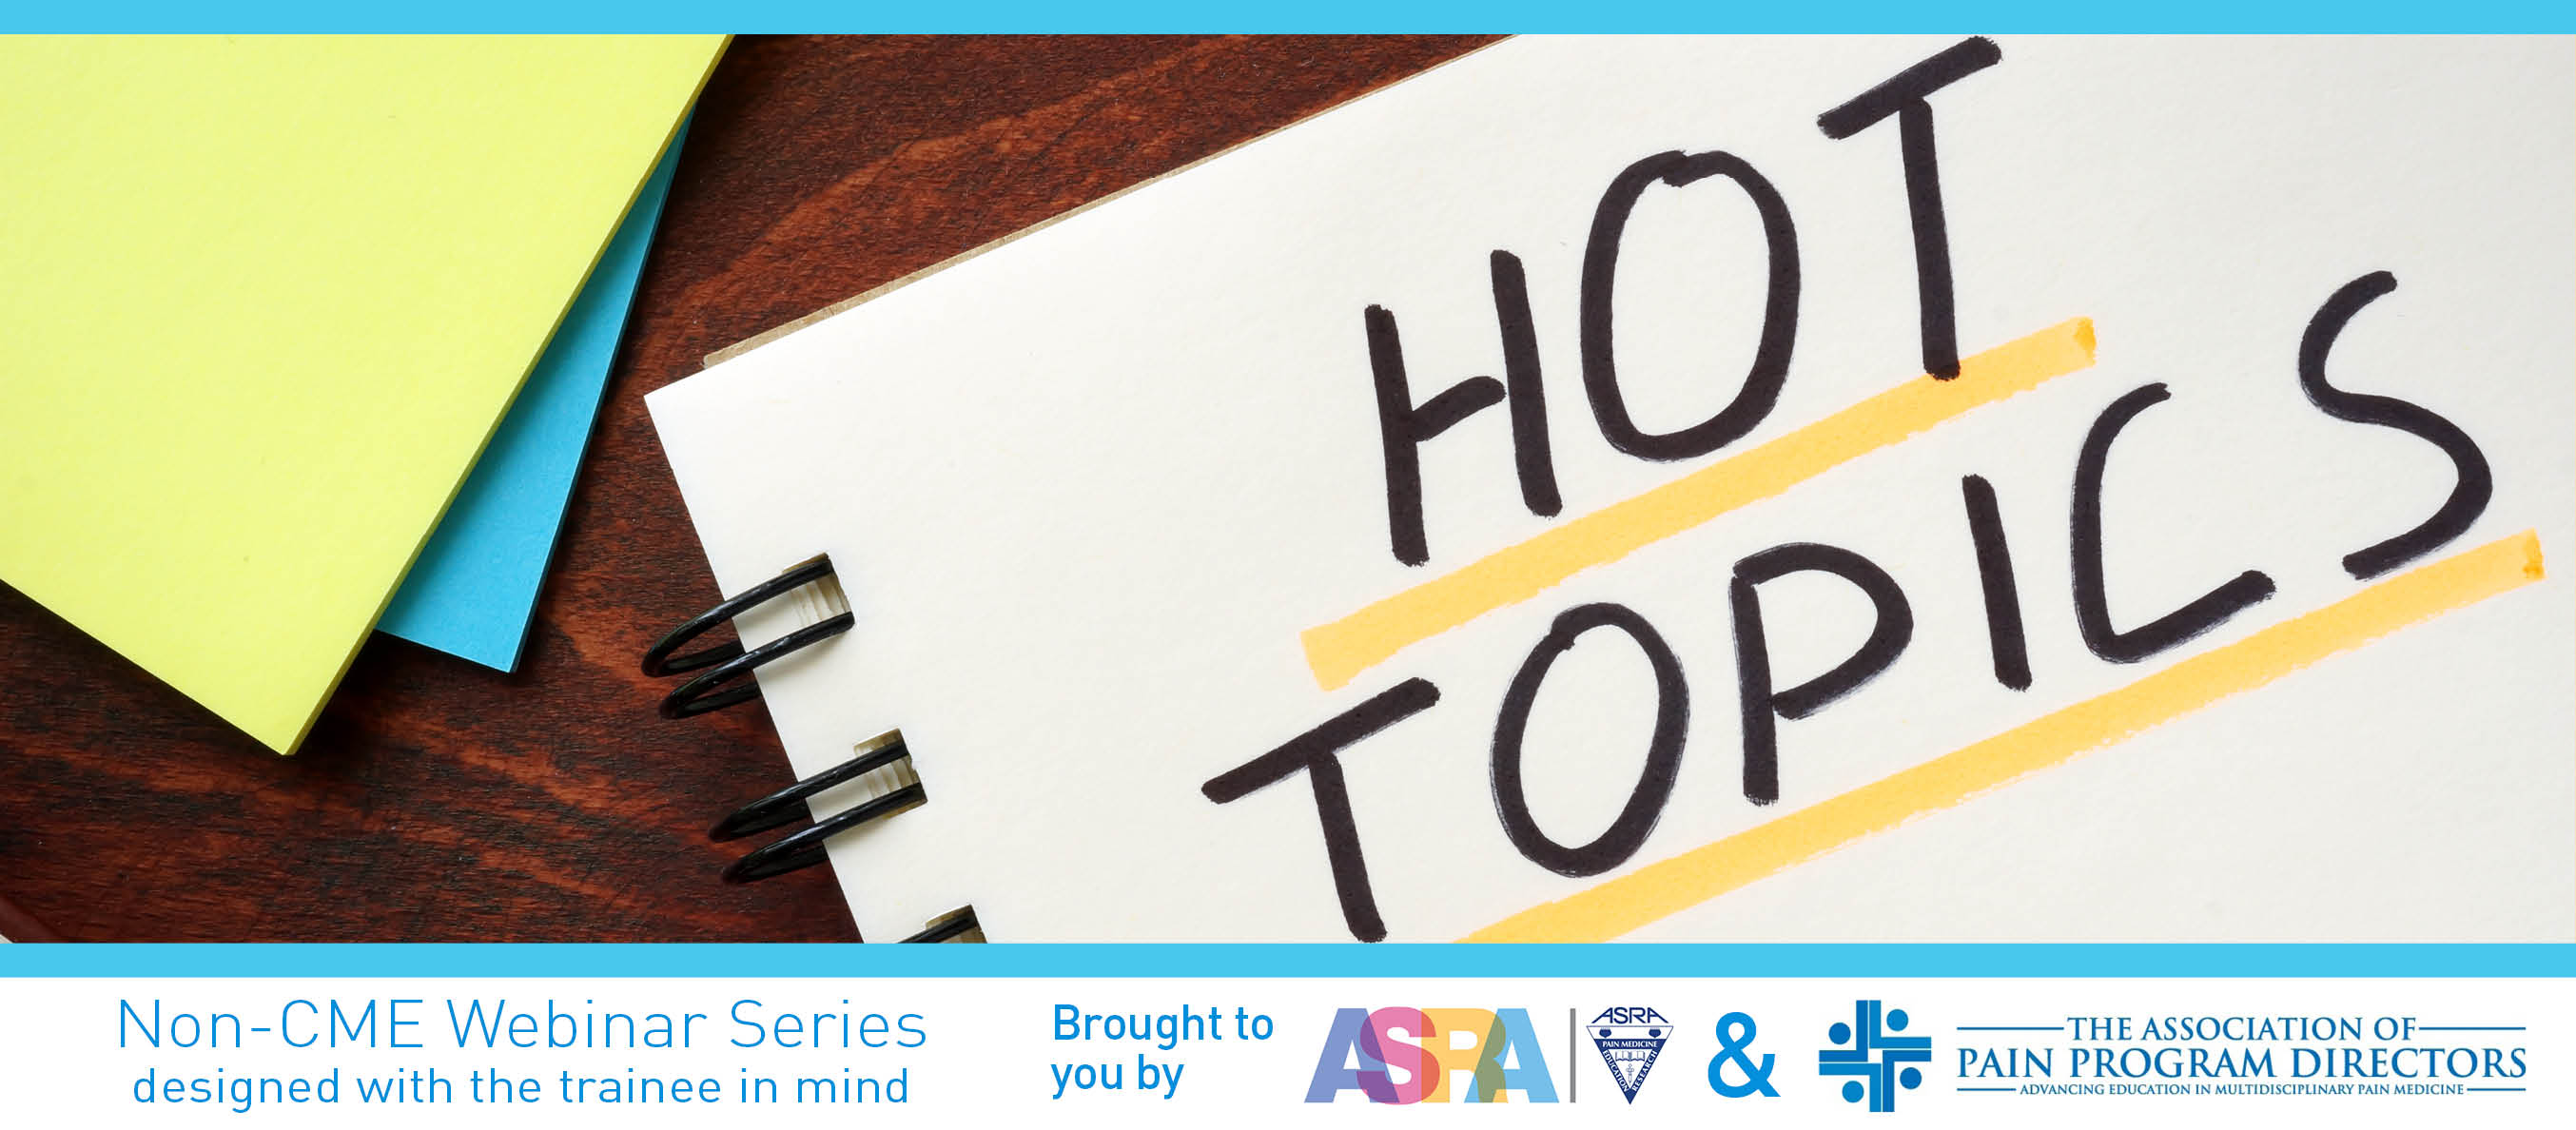 Hot Topics Webinars